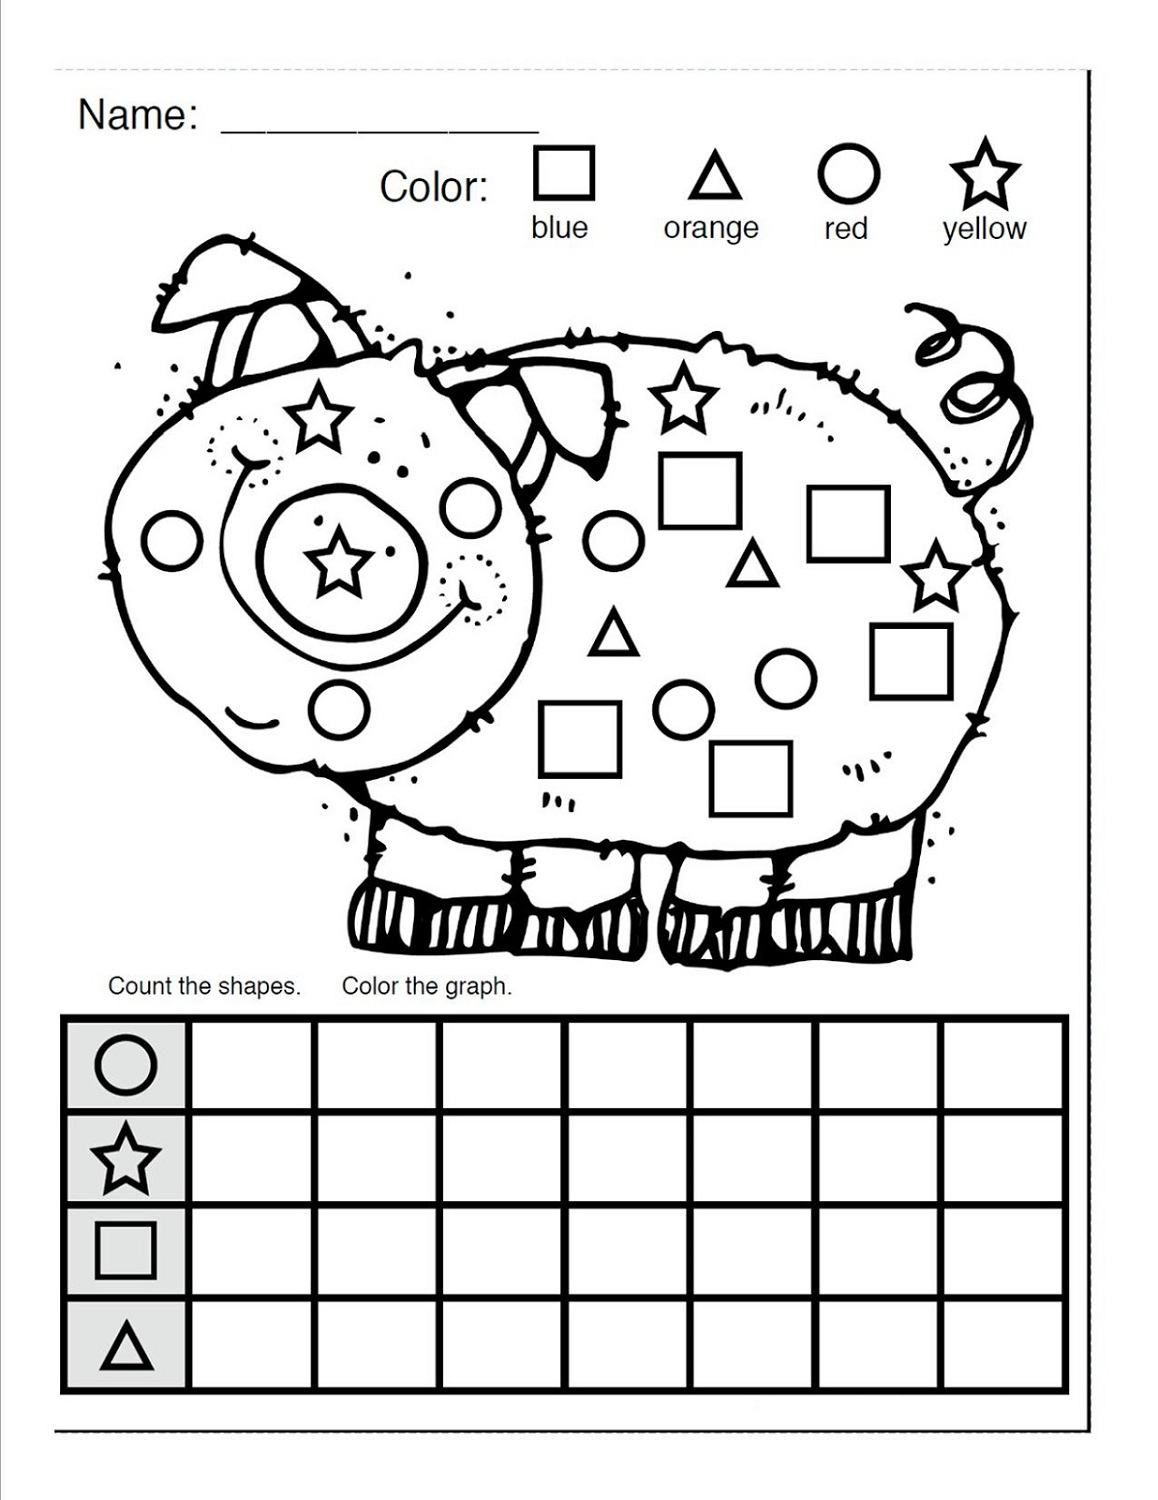 Uncategorized Shape Worksheets color the shape worksheets activity shelter shapes worksheet piggy